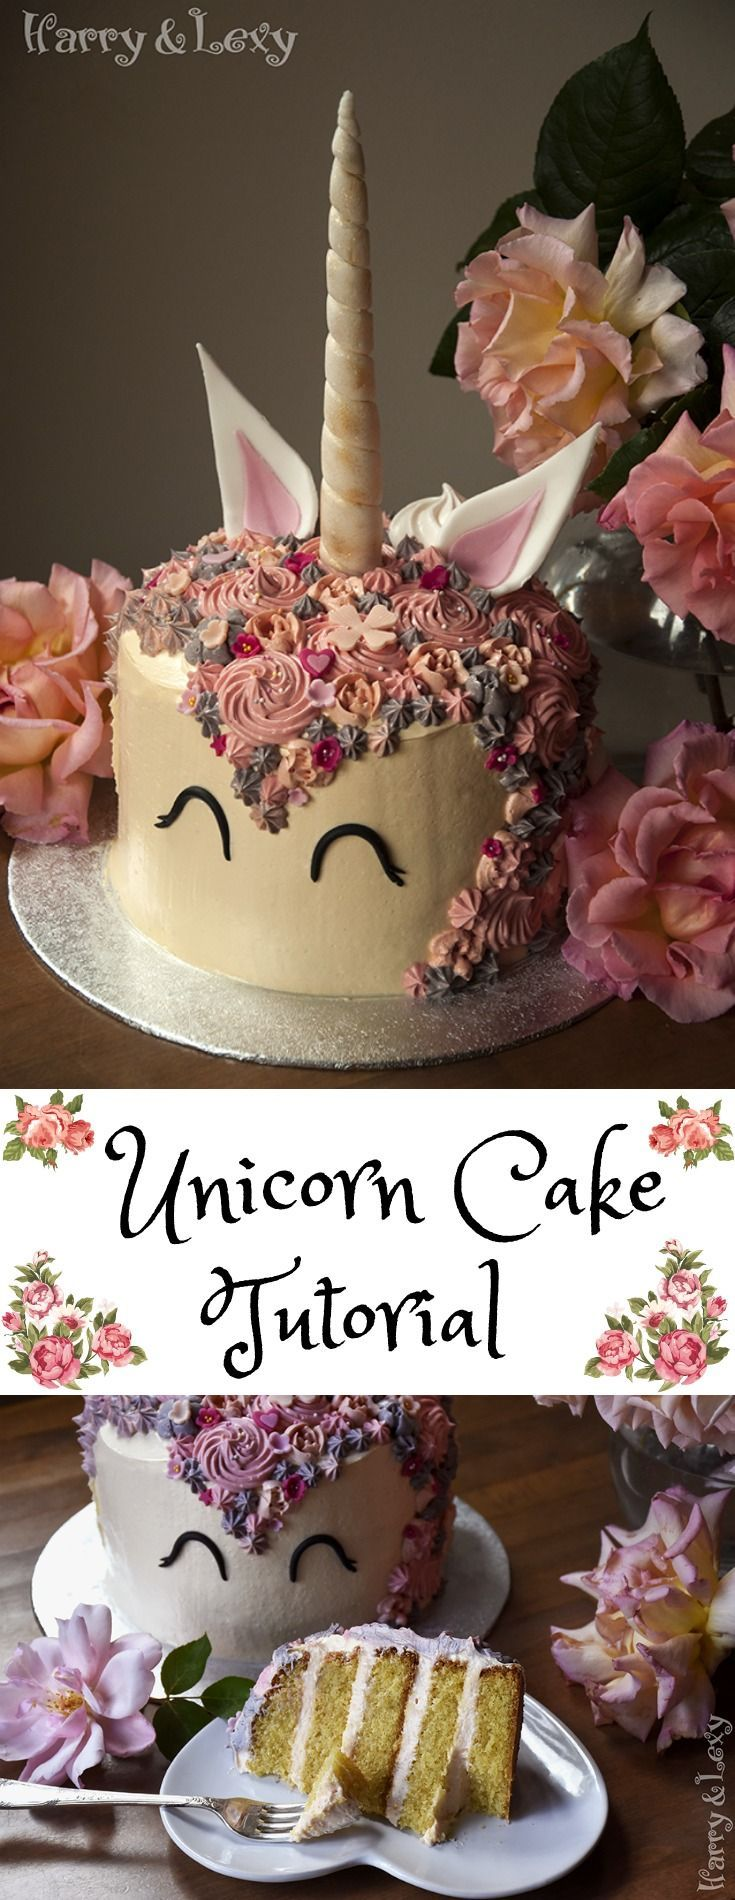 If you're wondering how to make a Unicorn cake, you're at the right place. Our easy-to-follow recipe with step by step pictures will reveal all secrets.